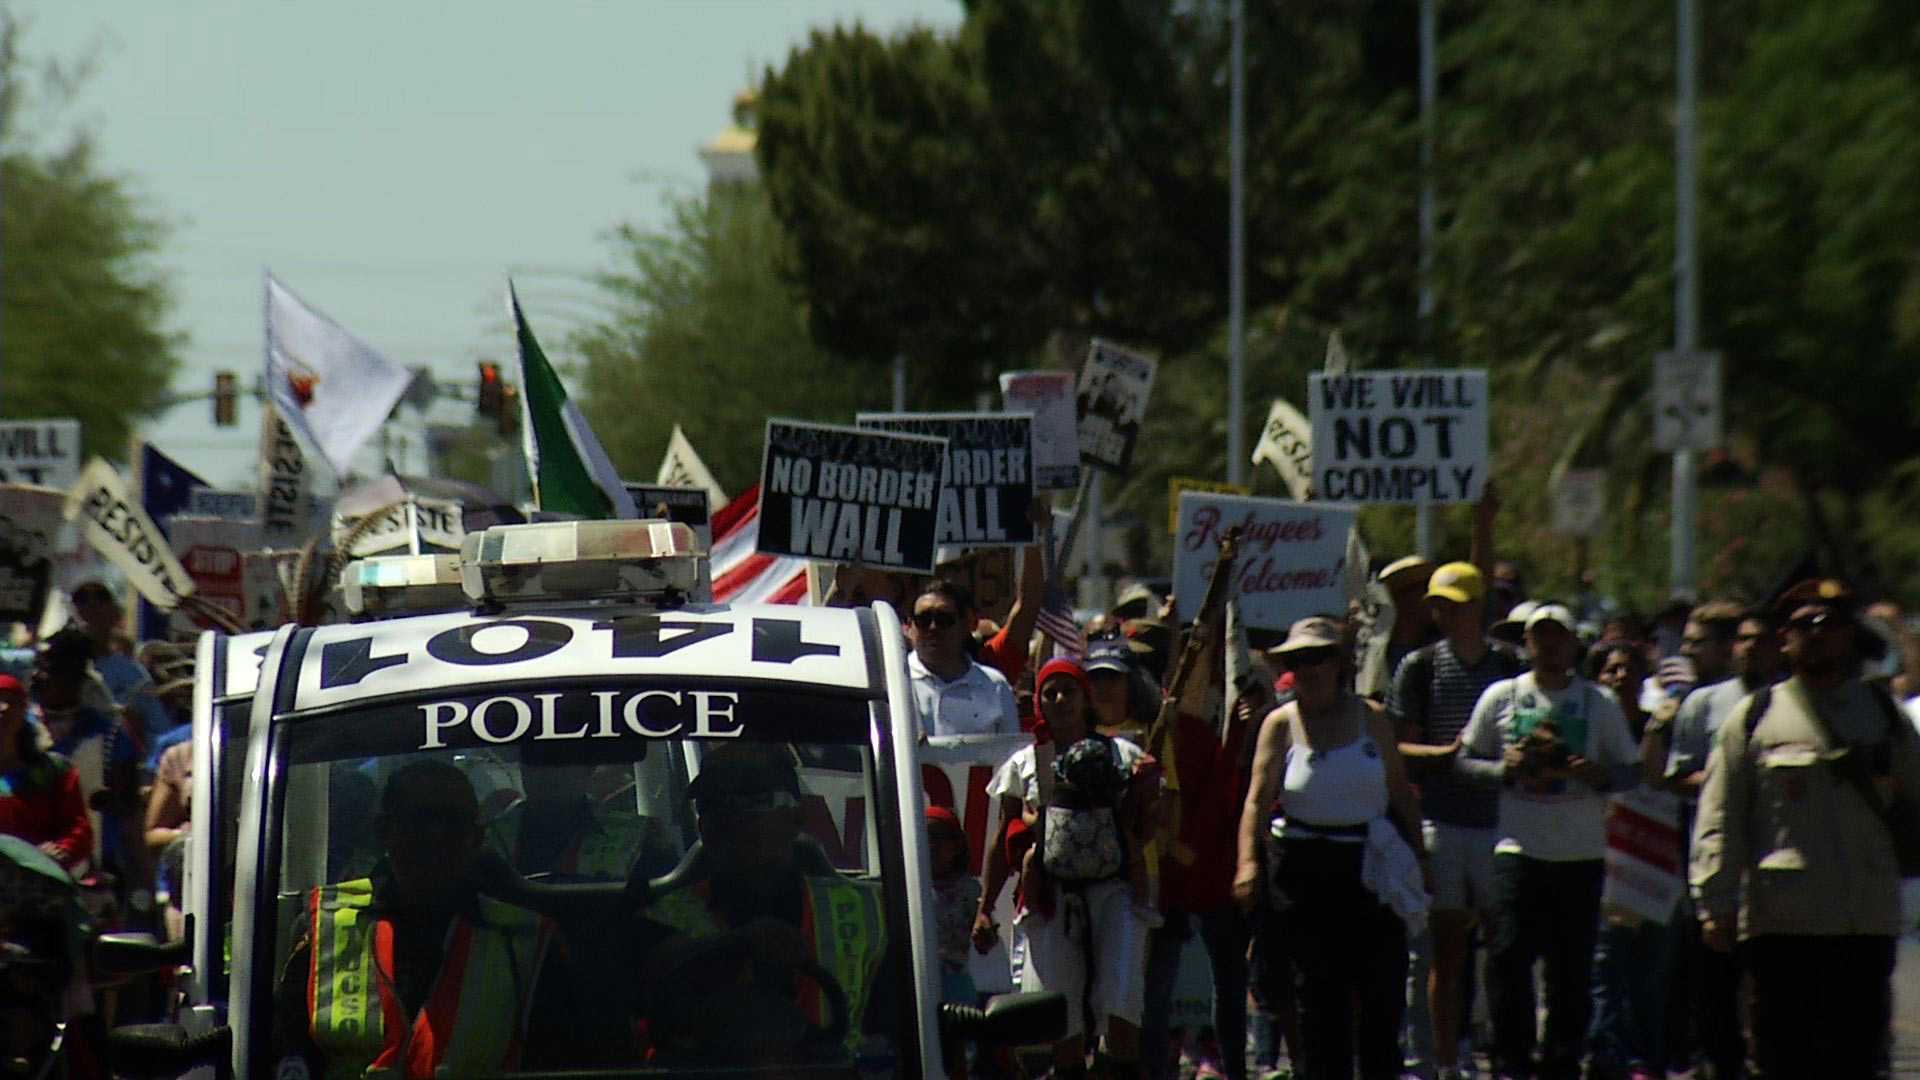 Three hundred demonstrators marched from Tucson's south side to Armory Park, May 1, 2017.